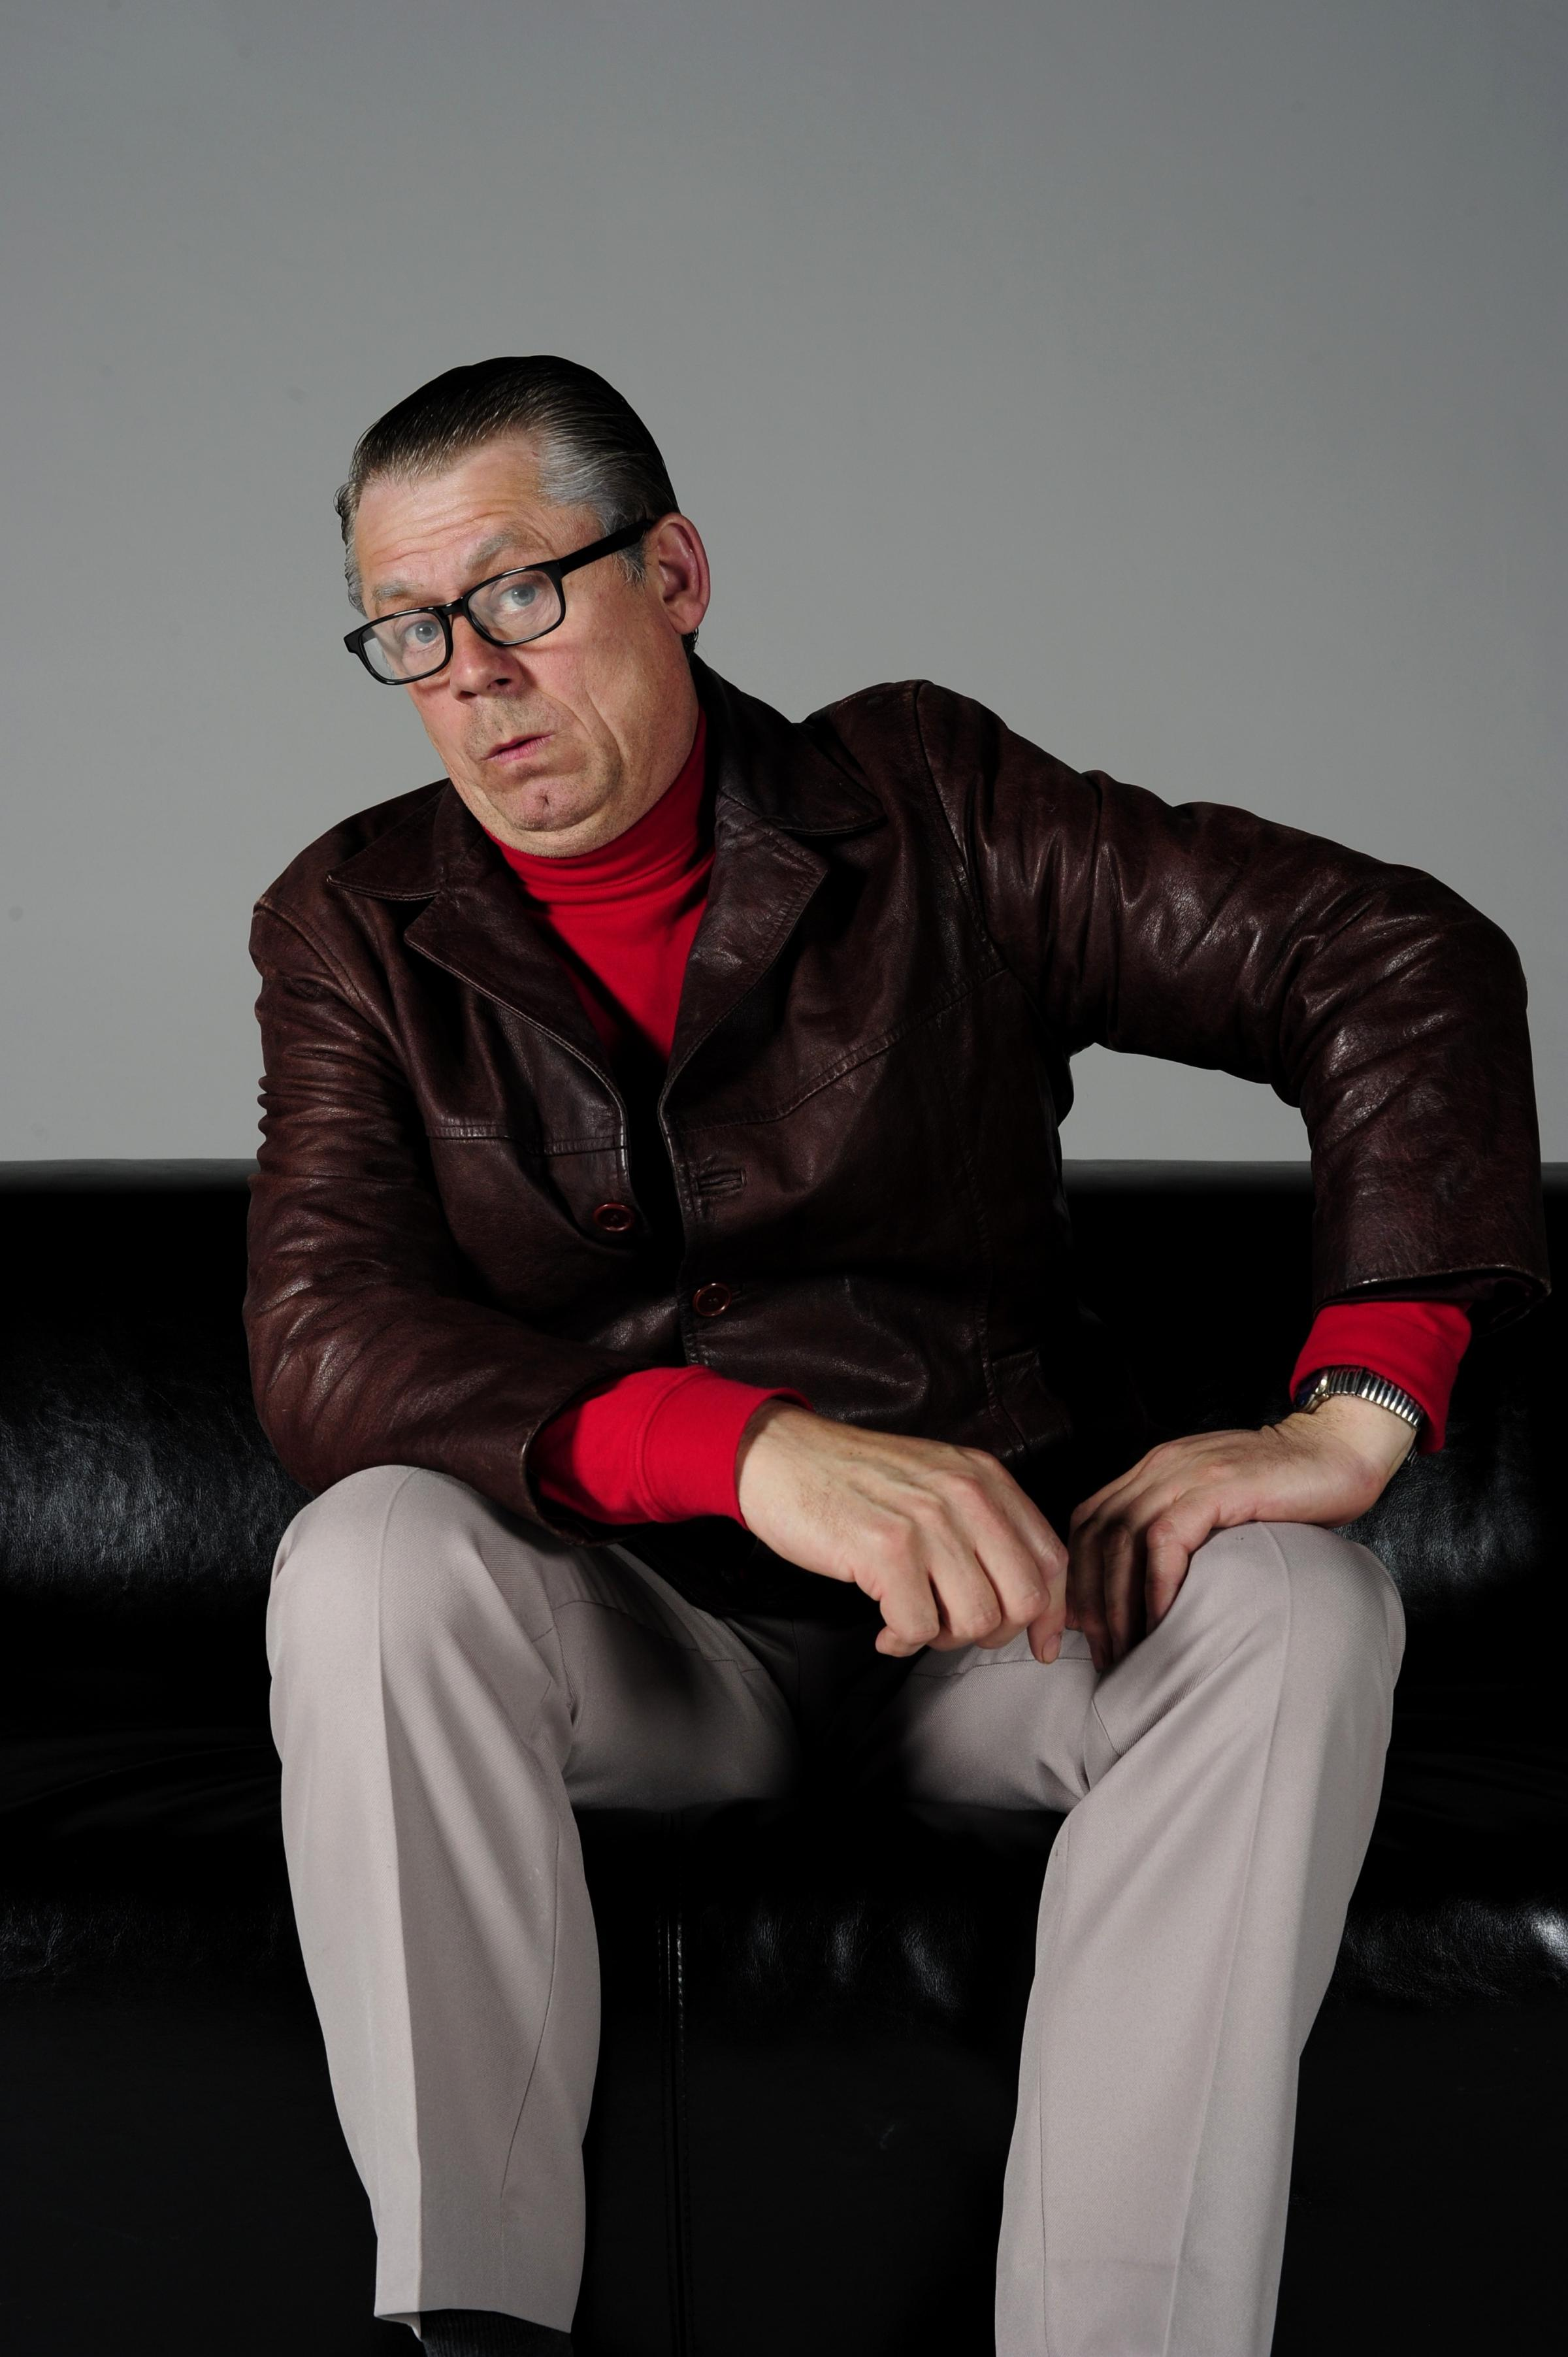 John Shuttleworth delighted the audience at King's Hall, Ilkley, last night